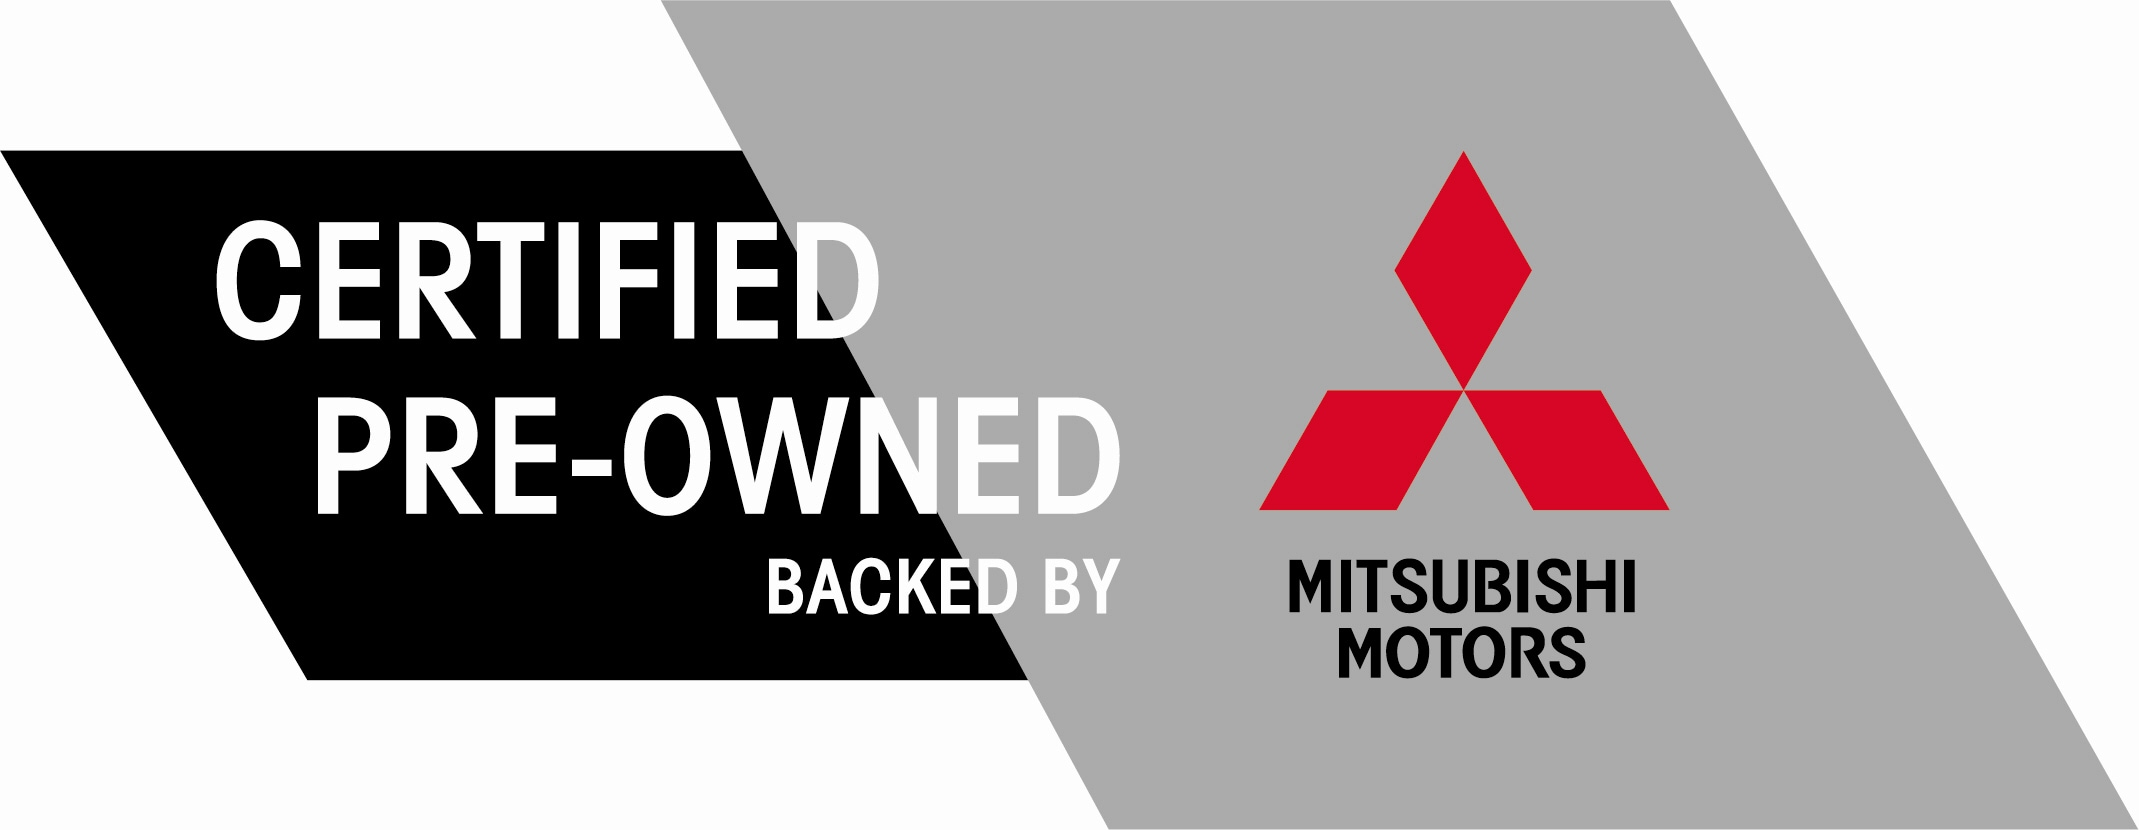 mitsubishi haven car dealers cpe norwich west new middletown in eclipse sale available ct auto used for sportronic gs